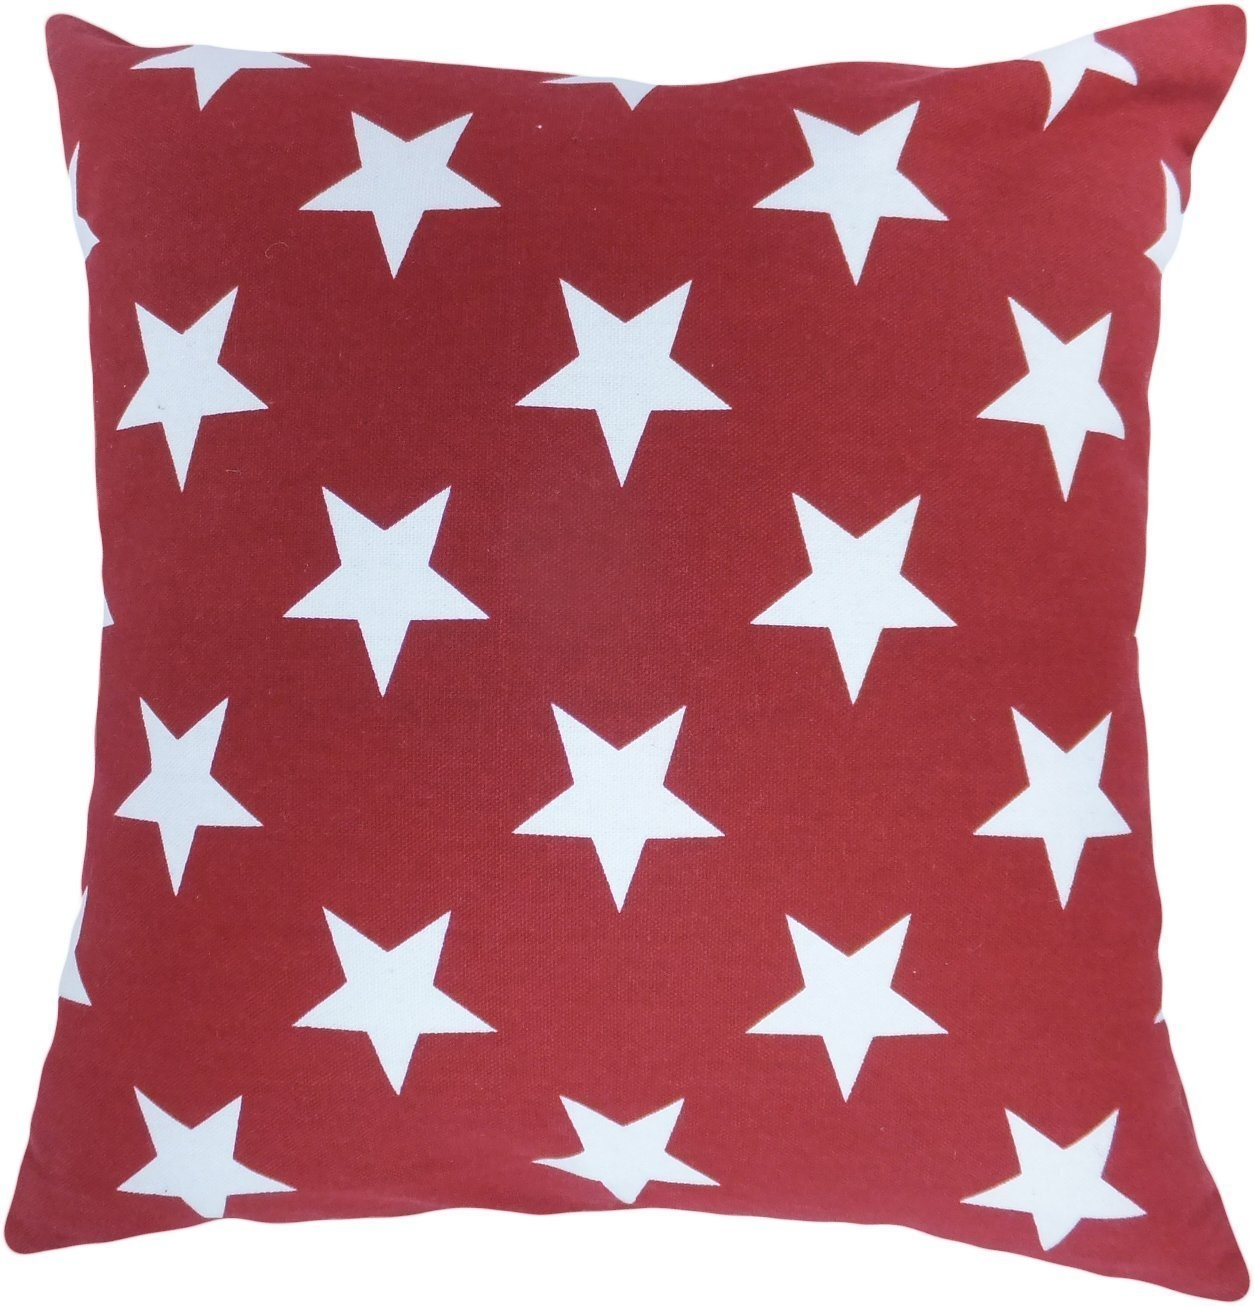 Decorative Printed Star Floral Throw Pillow Cover 46cm Burgundy 11street Malaysia - Pillows ...